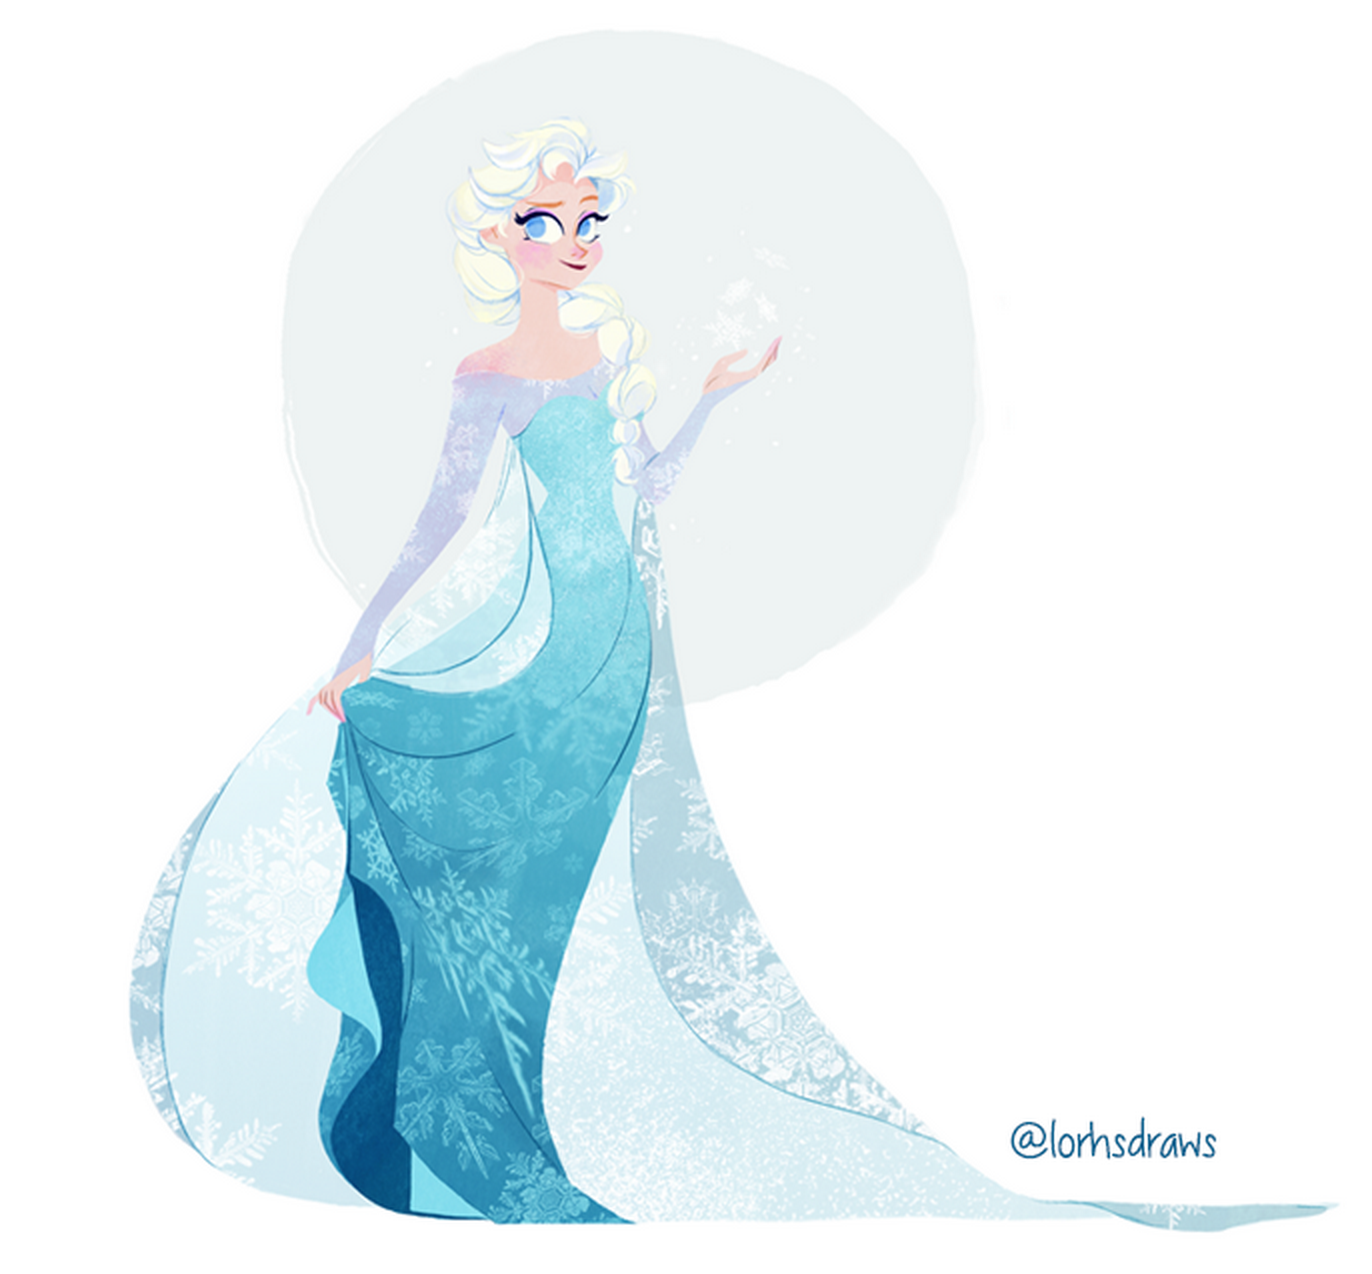 92 Artists Drew Our Favorite Female Disney and Pixar Characters ...